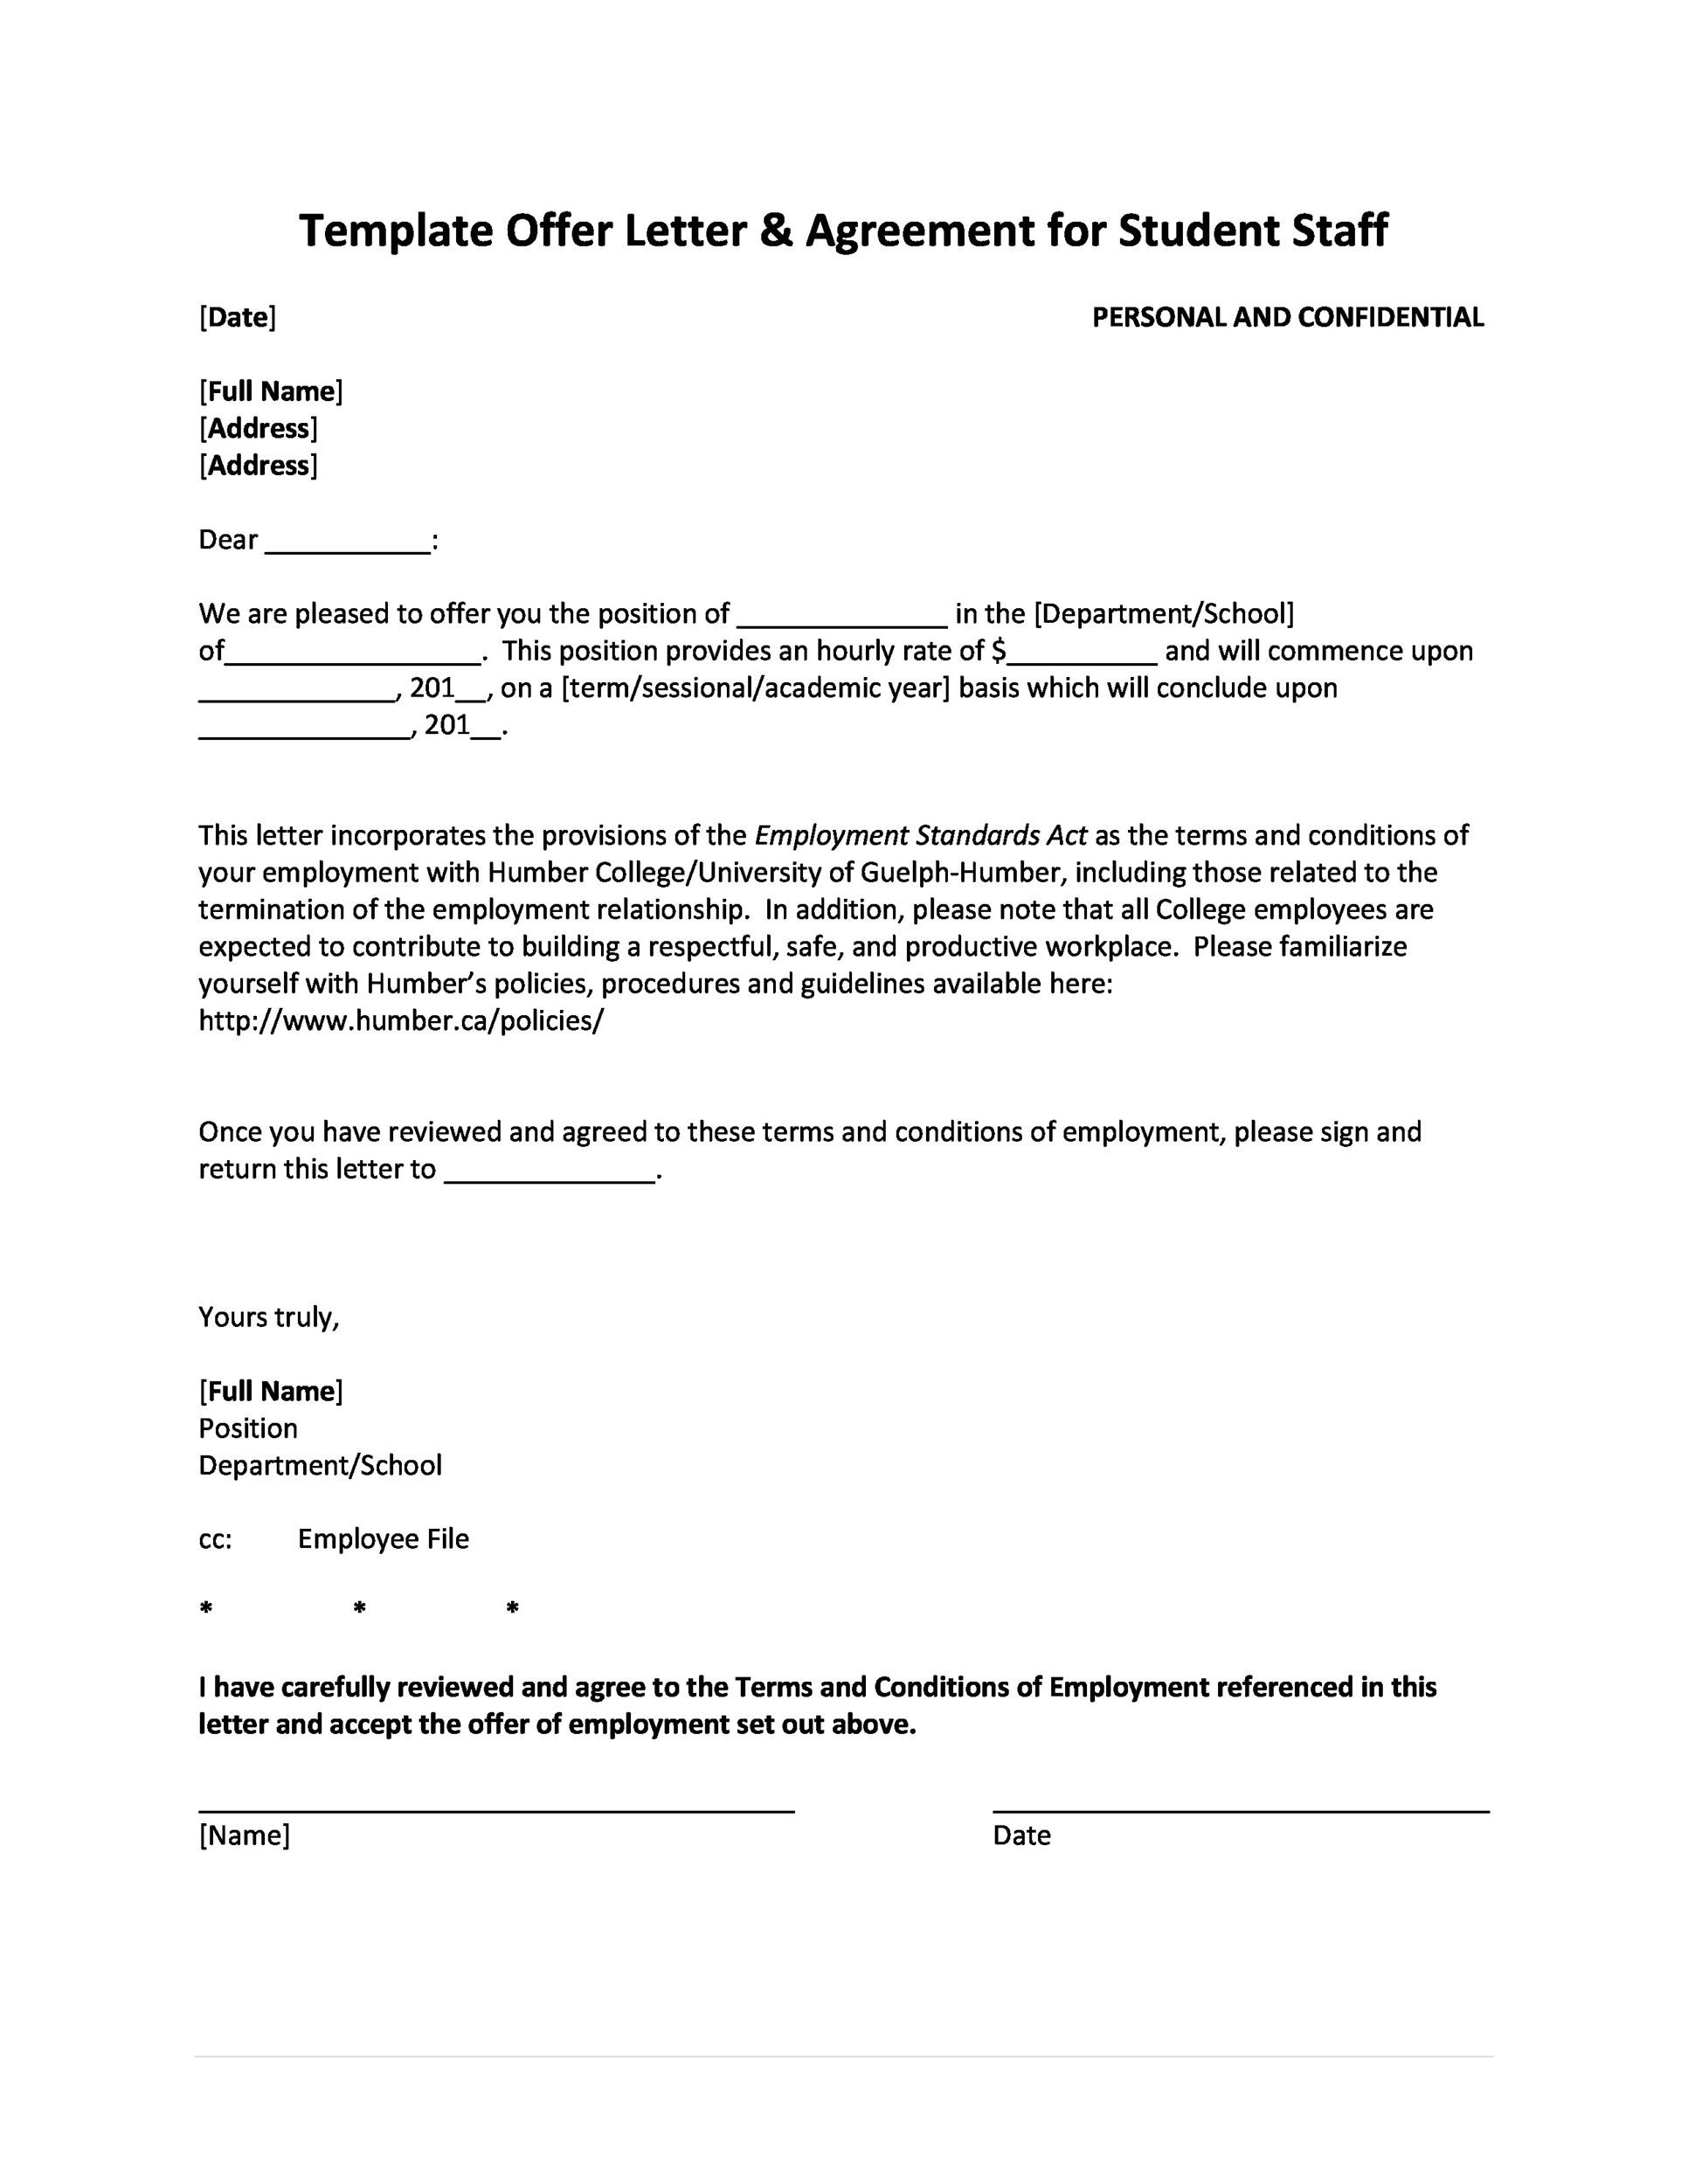 fantastic offer letter templates employment counter offer job offer letter 43